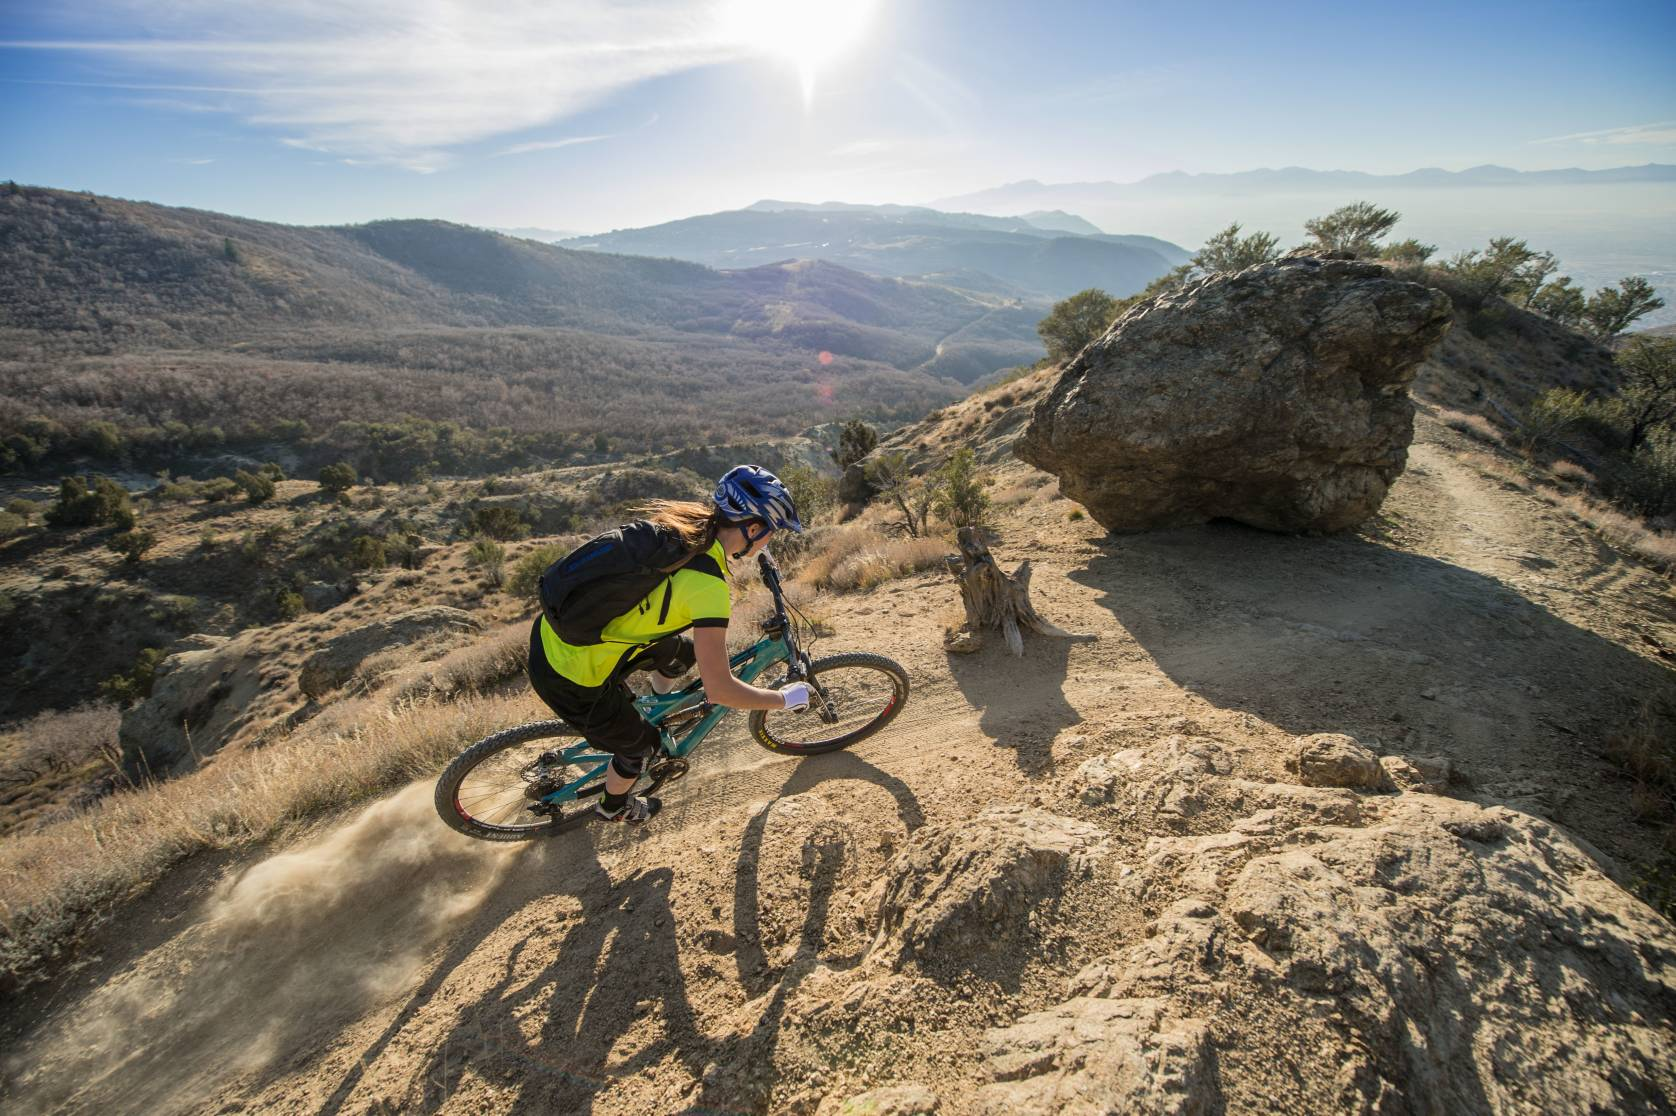 Person desert mountain biking